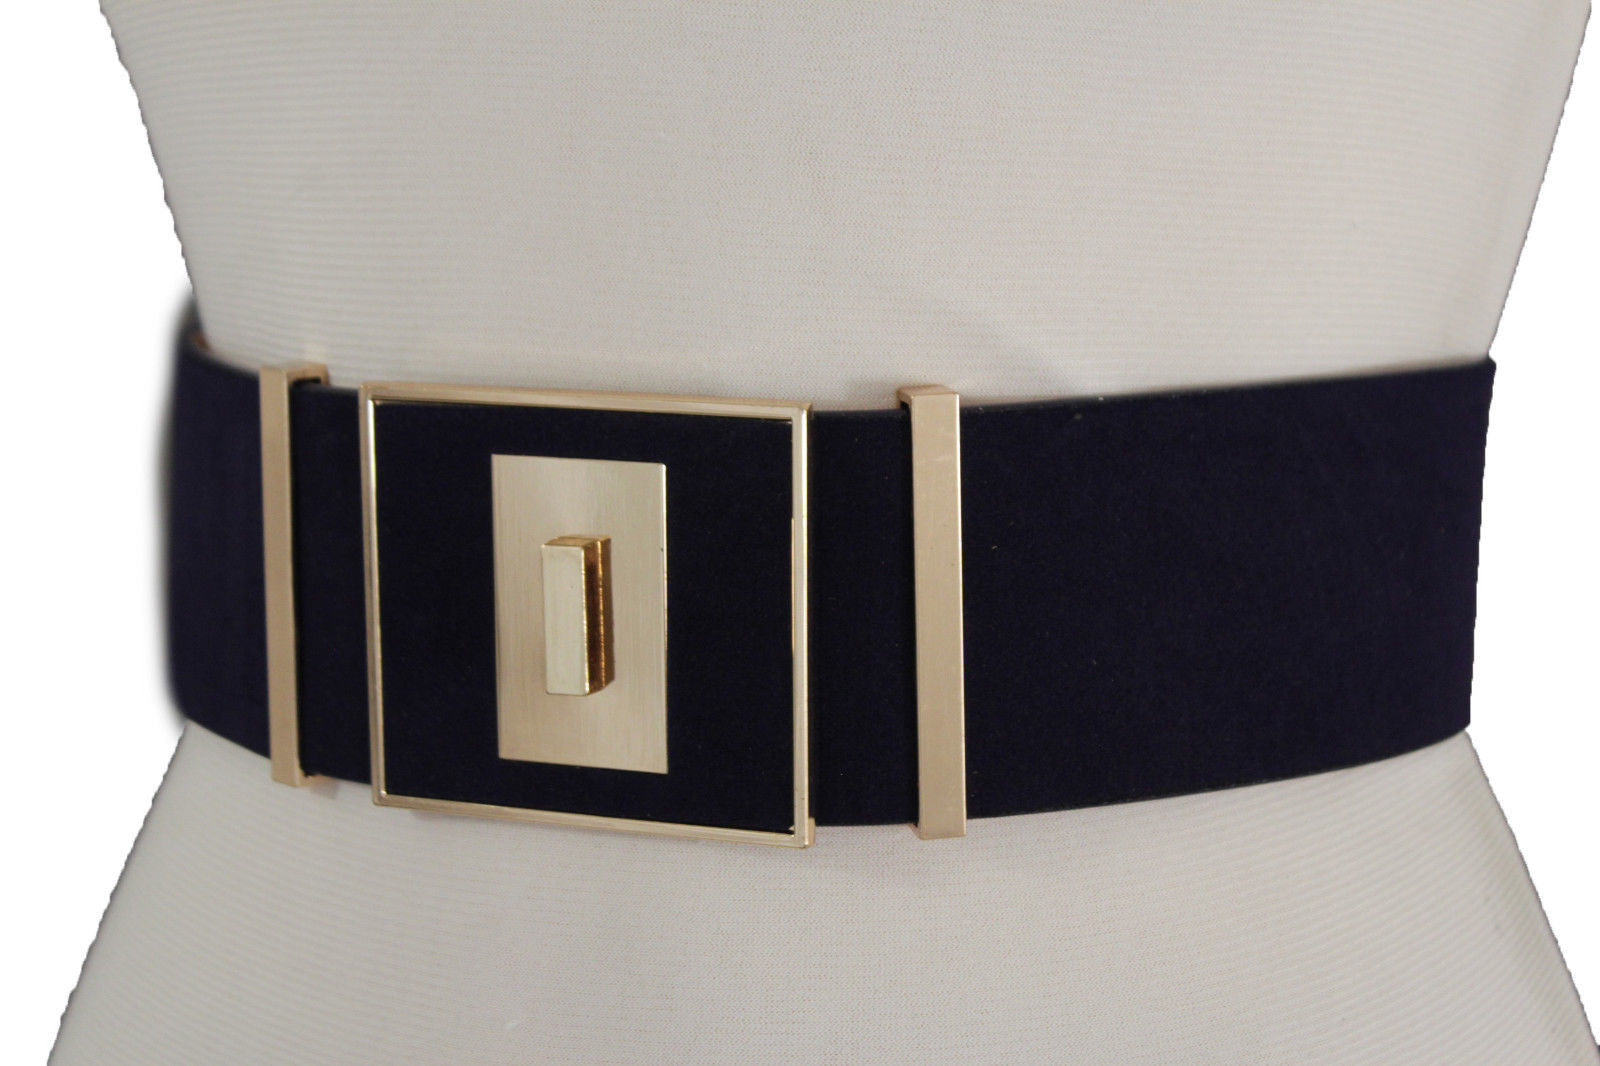 Women Wide Fashion Belt D Taupe Faux Suede Leather Gold Metal Square Buckle S M